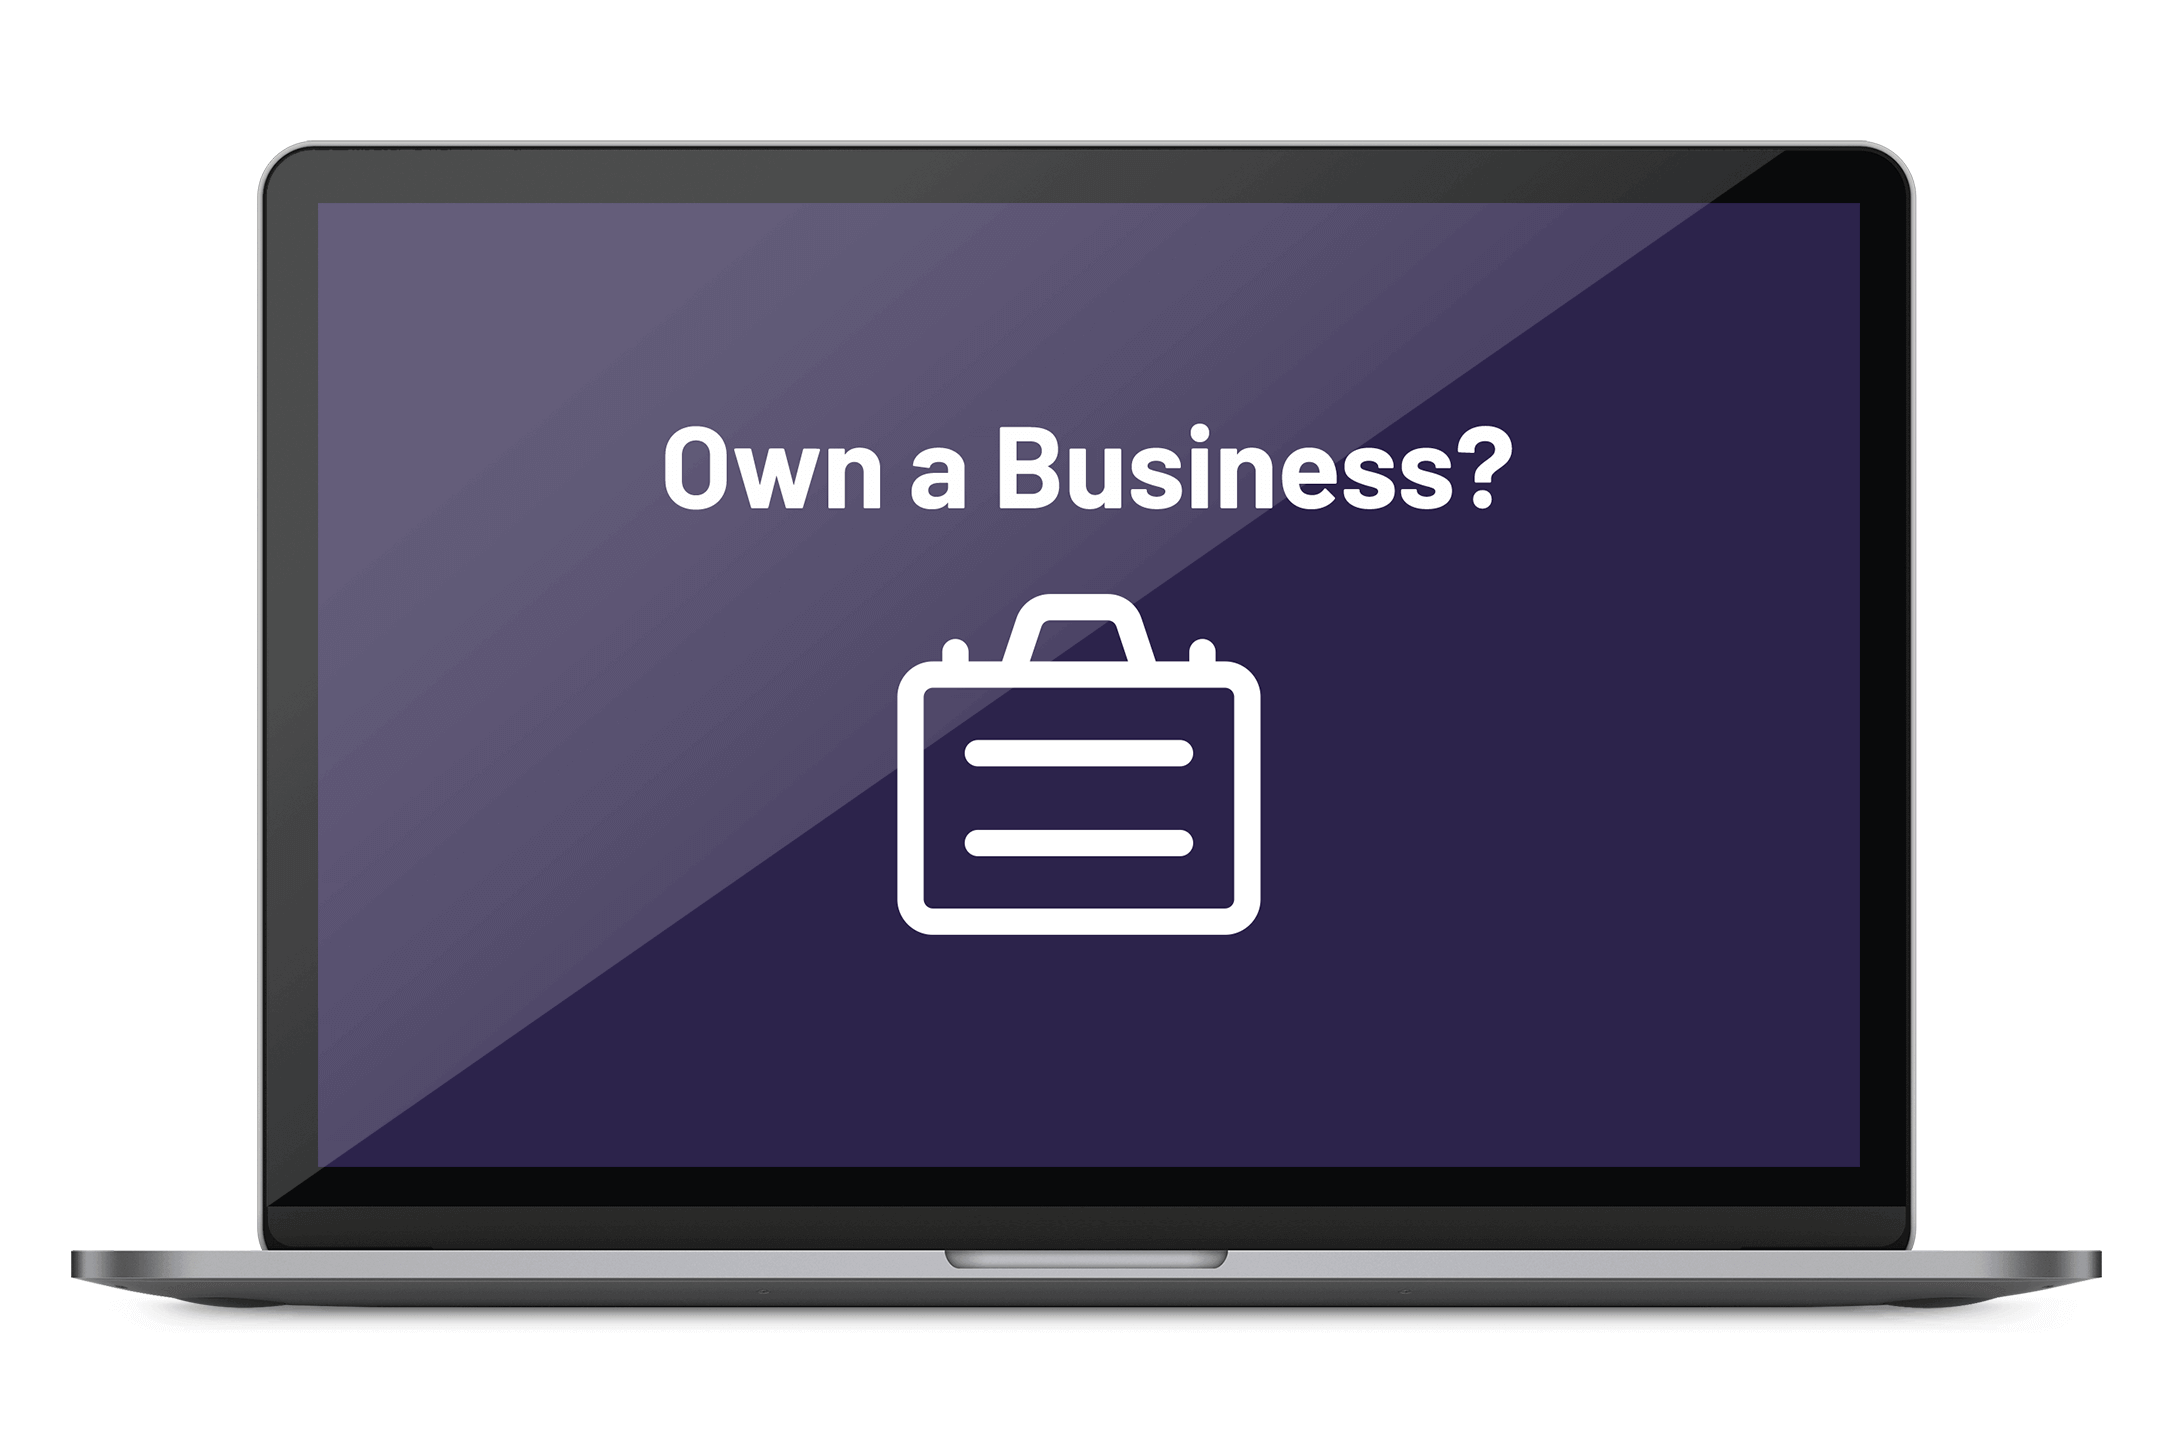 Laptop displaying a text 'Own a Business?' and icon of briefcase